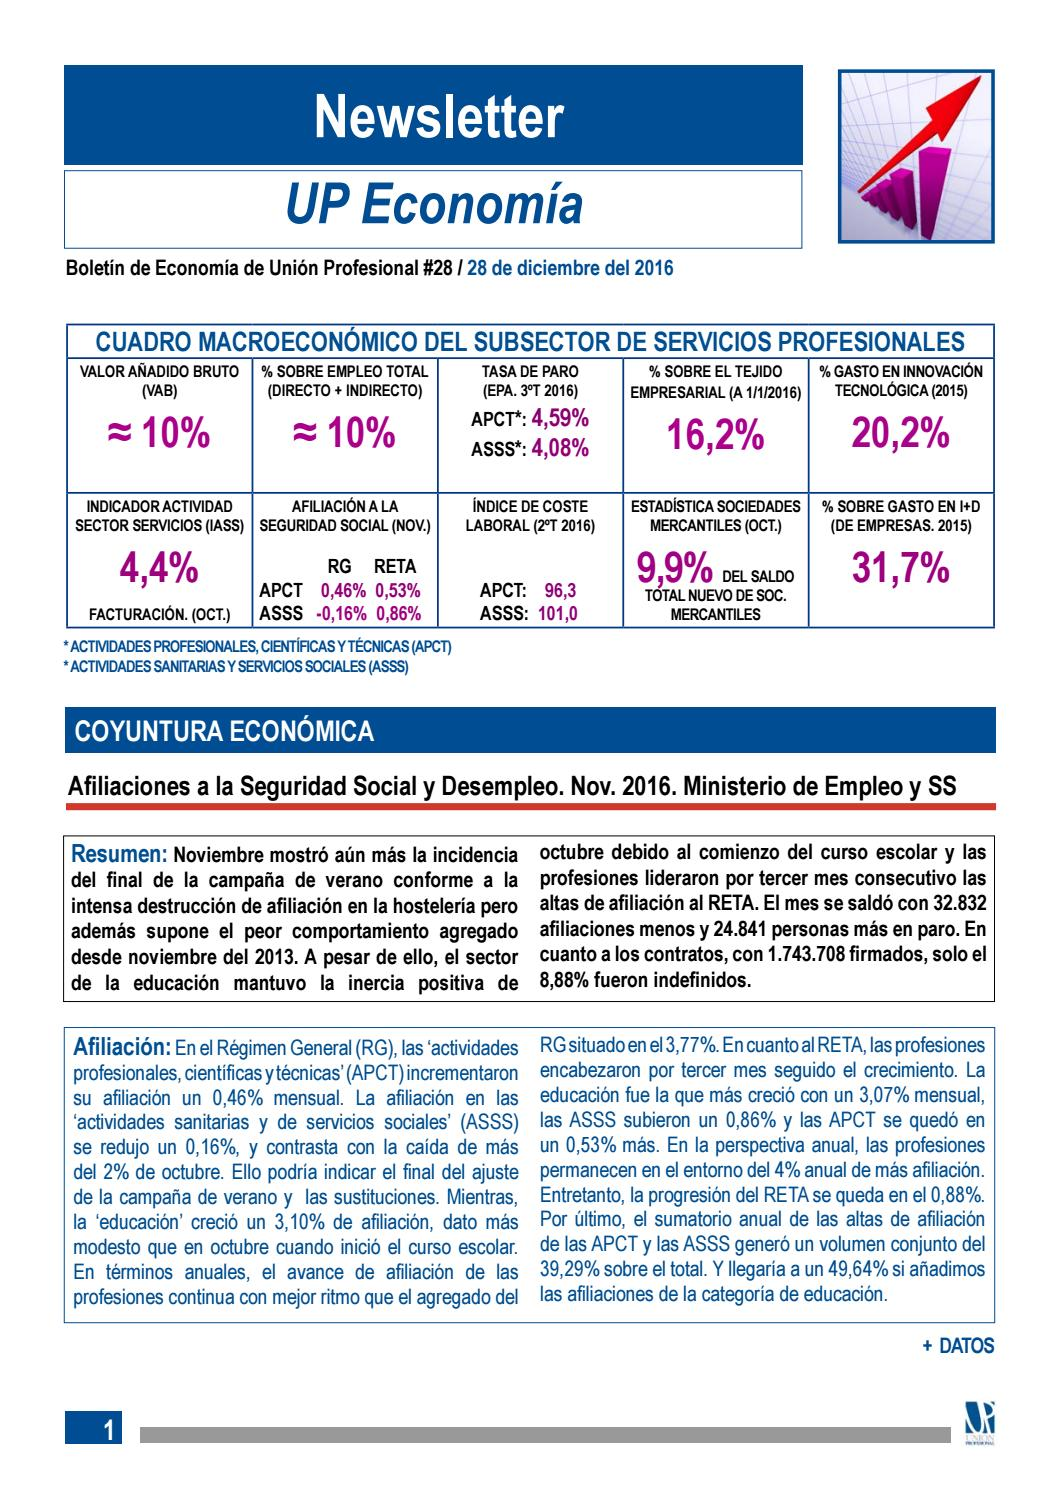 Newsletter UP Economía 2016 by Unión Profesional - issuu